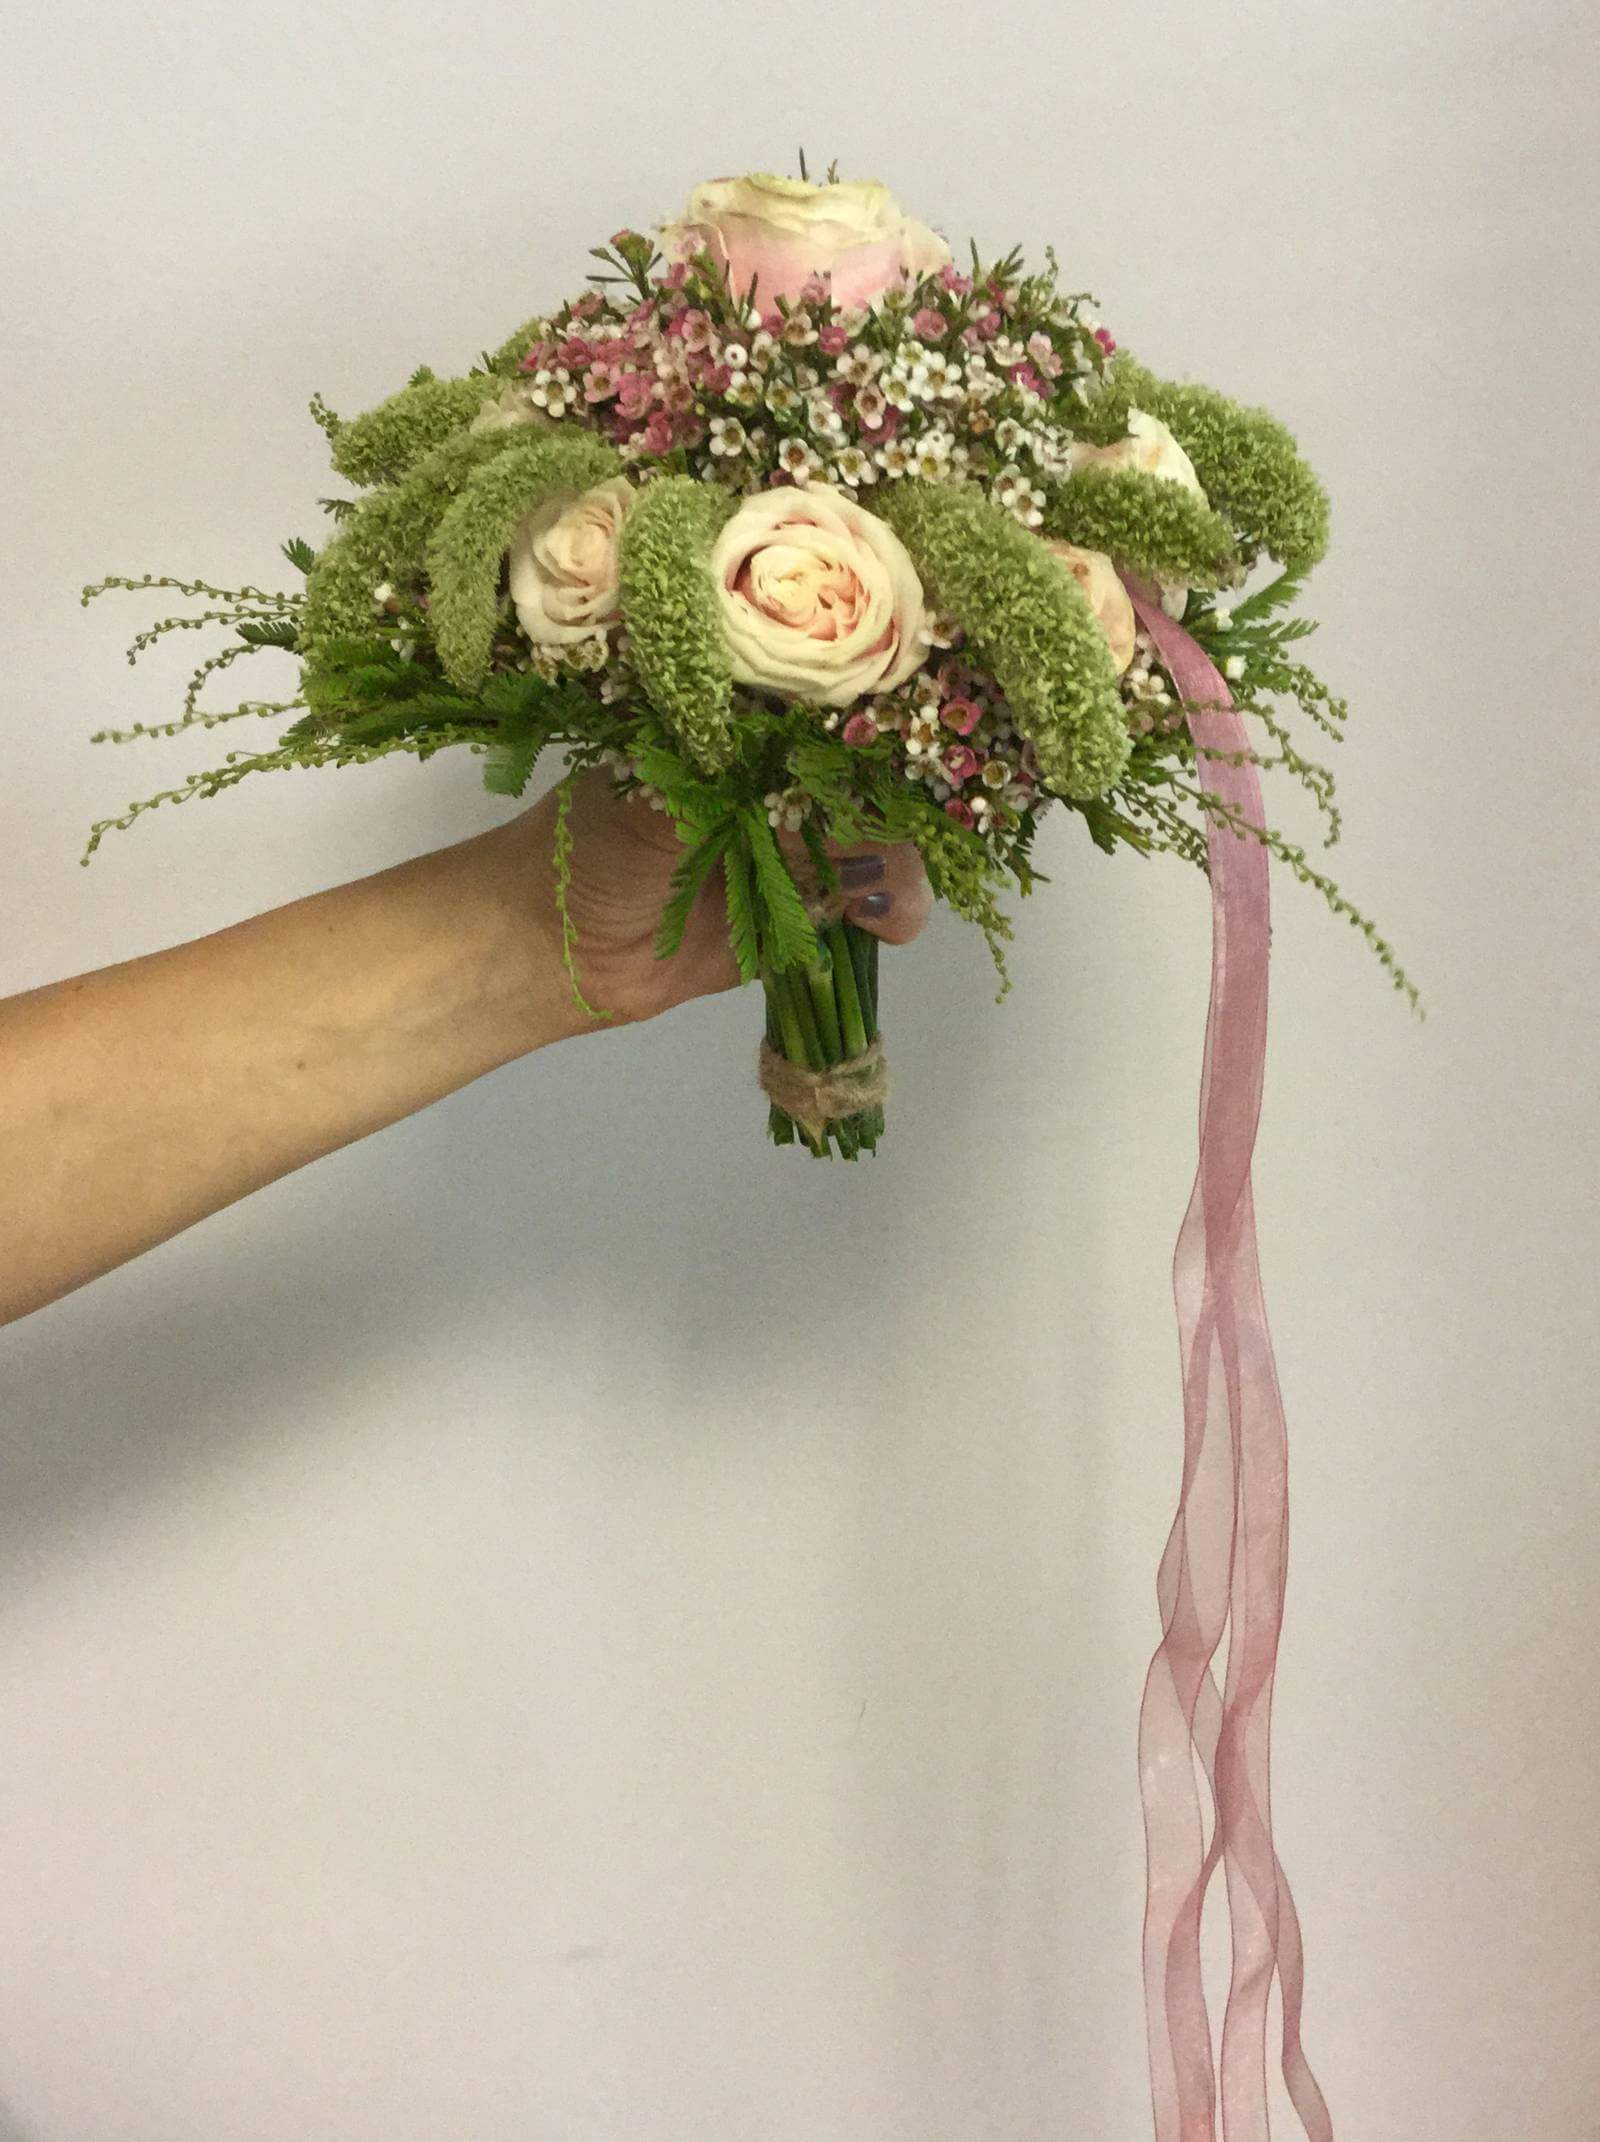 Bouquet of flowers to give for Mother's Day